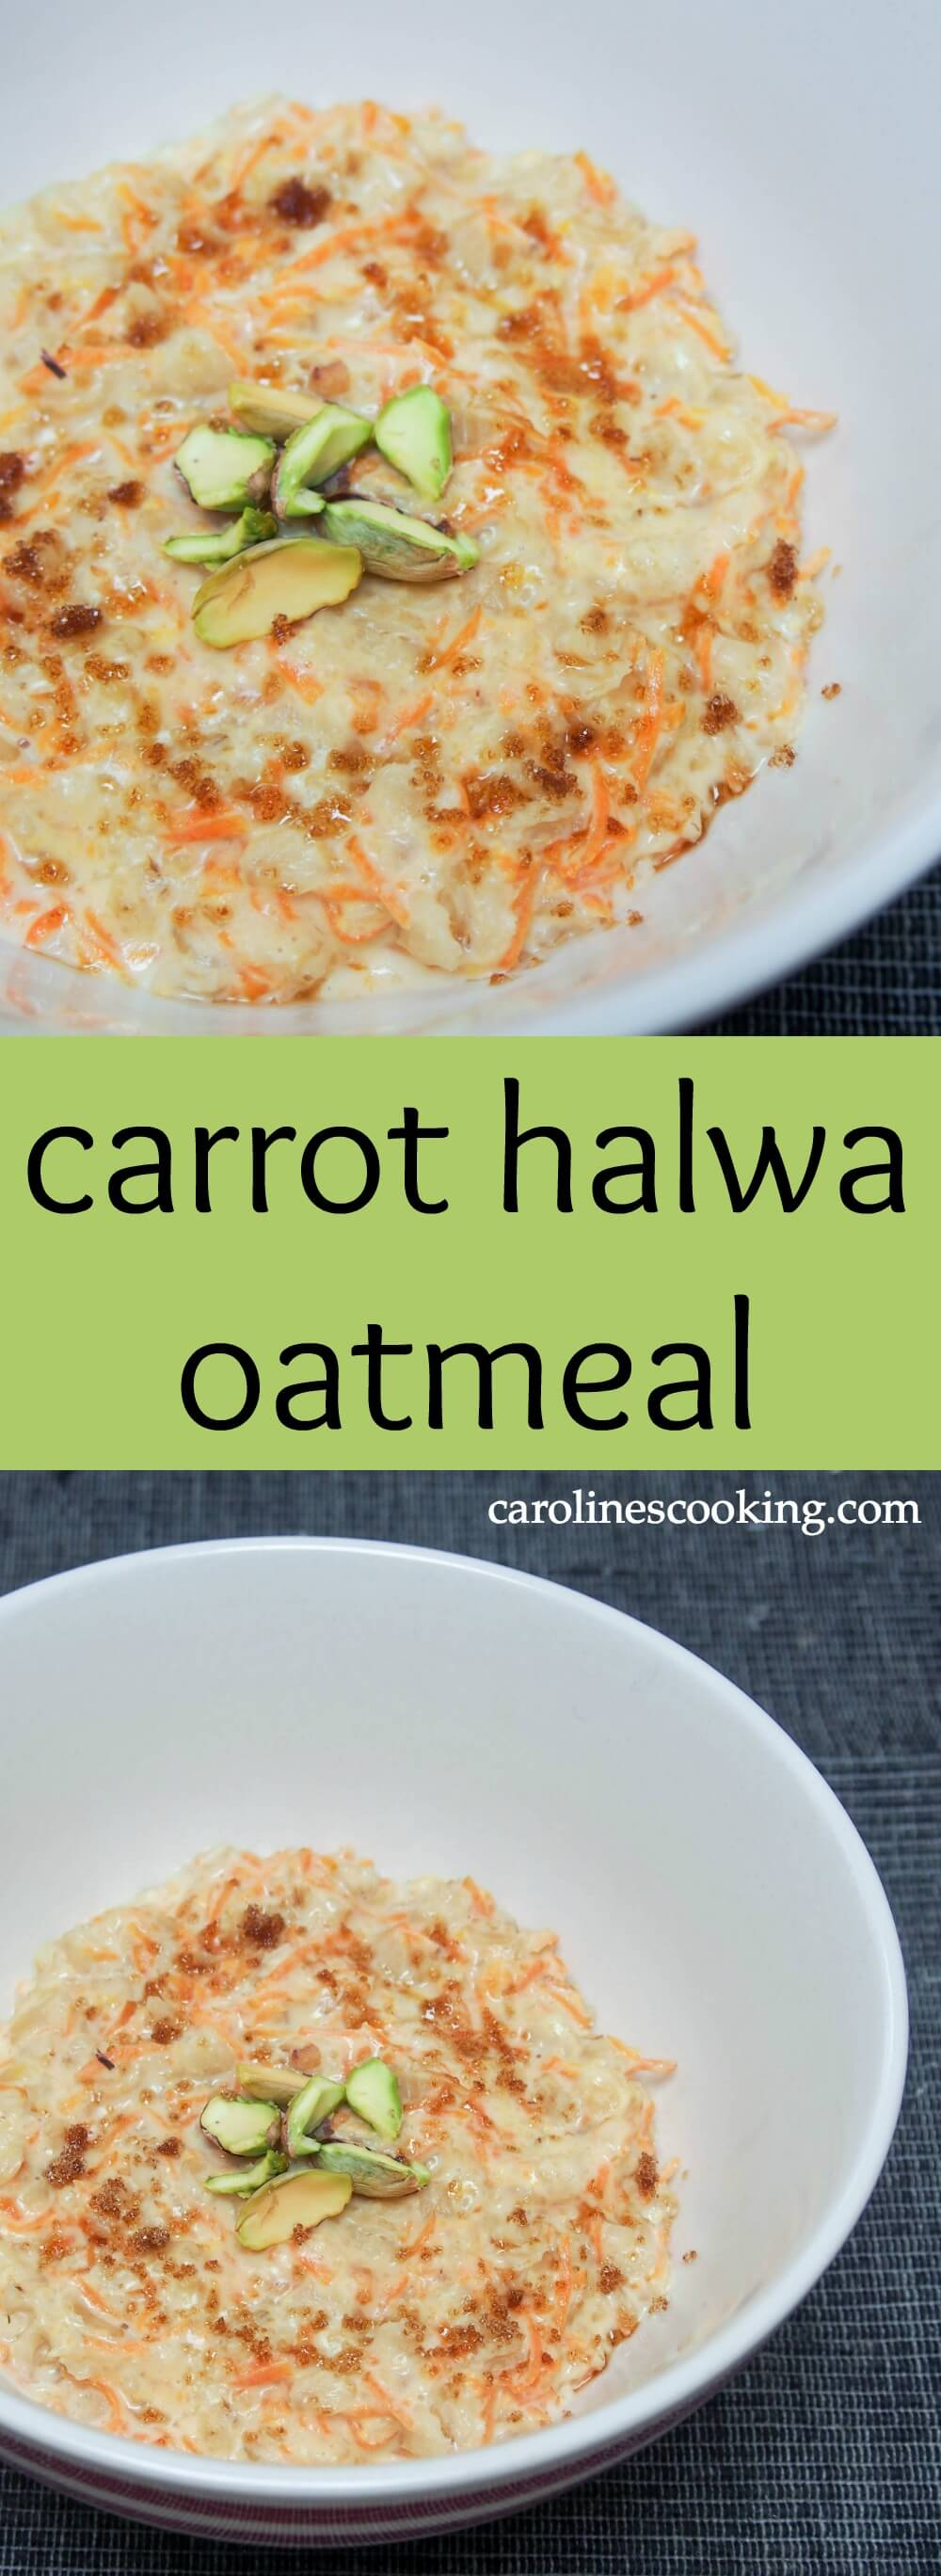 This carrot halwa oatmeal combines a traditional Indian dessert with stovetop oatmeal to make a delicious, hearty breakfast that's also good for you.